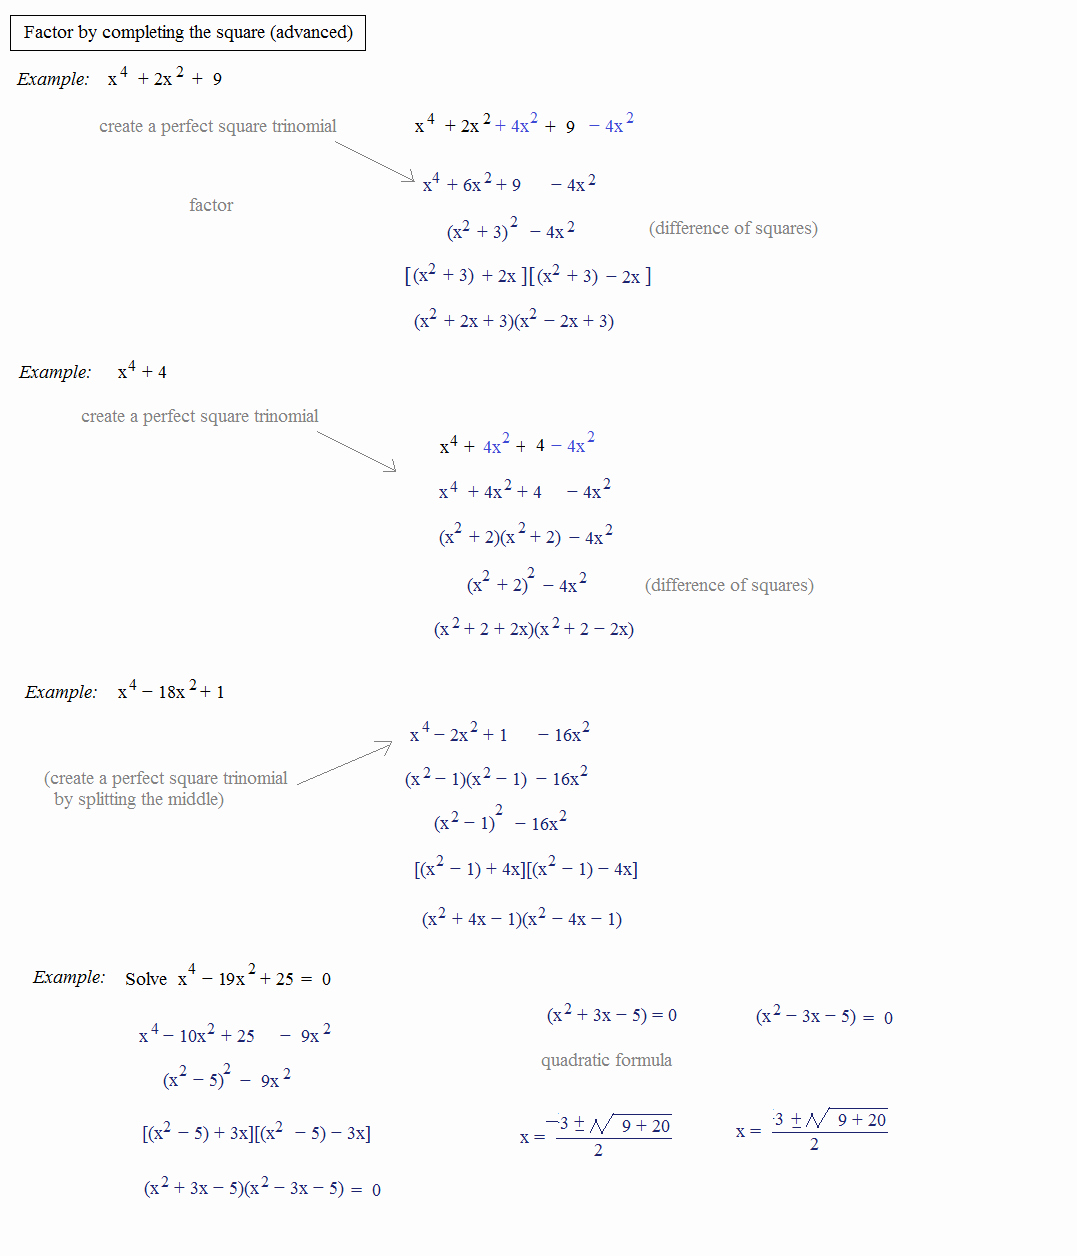 Quadratic formula Worksheet with Answers Lovely Math Plane Pleting the Square & Quadratic formula